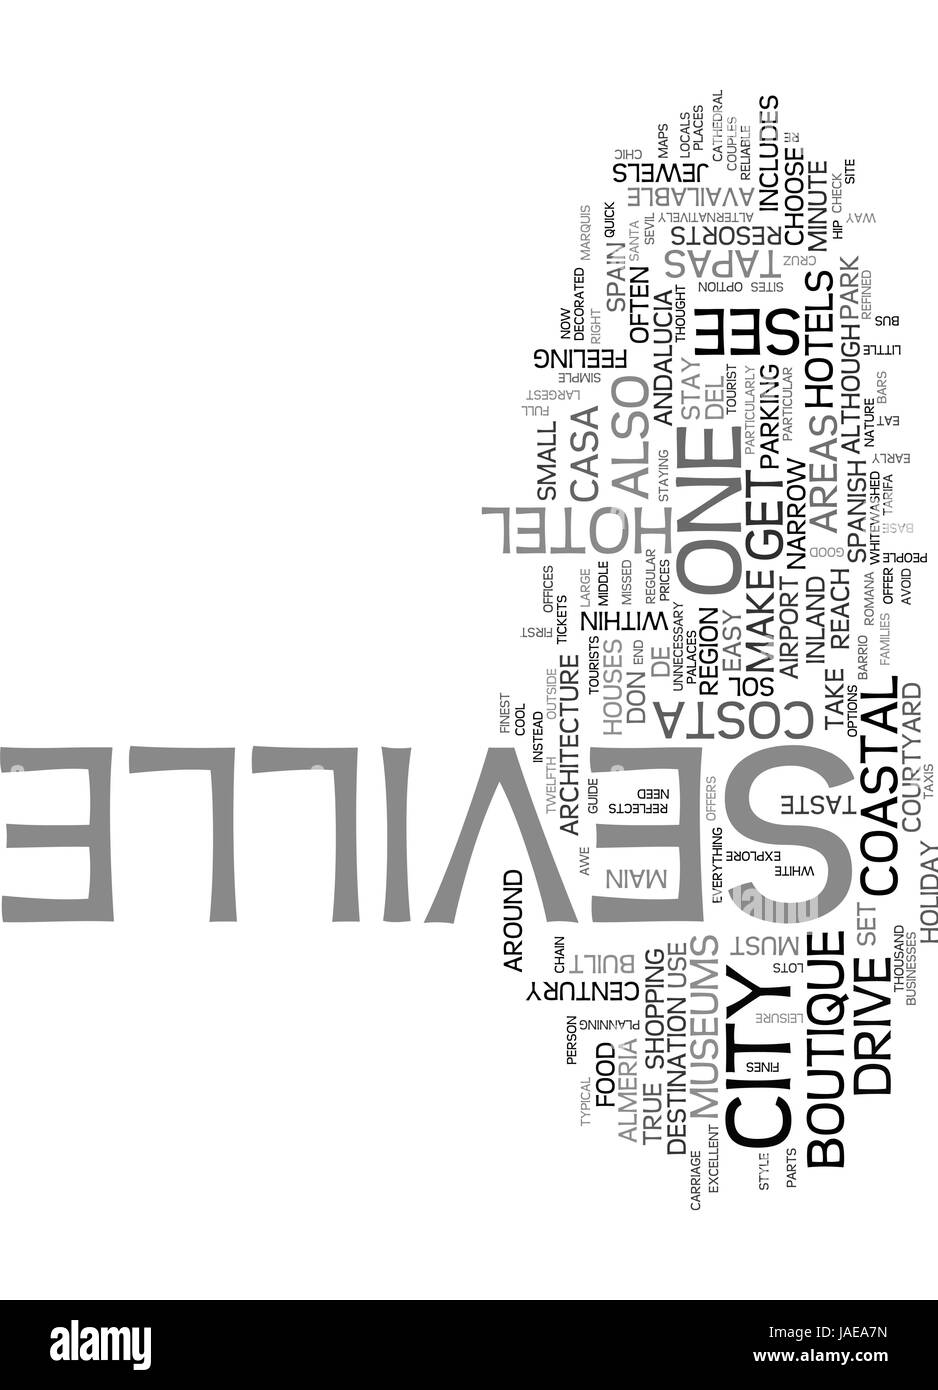 A QUICK GUIDE TO SEVILLE TEXT WORD CLOUD CONCEPT - Stock Vector